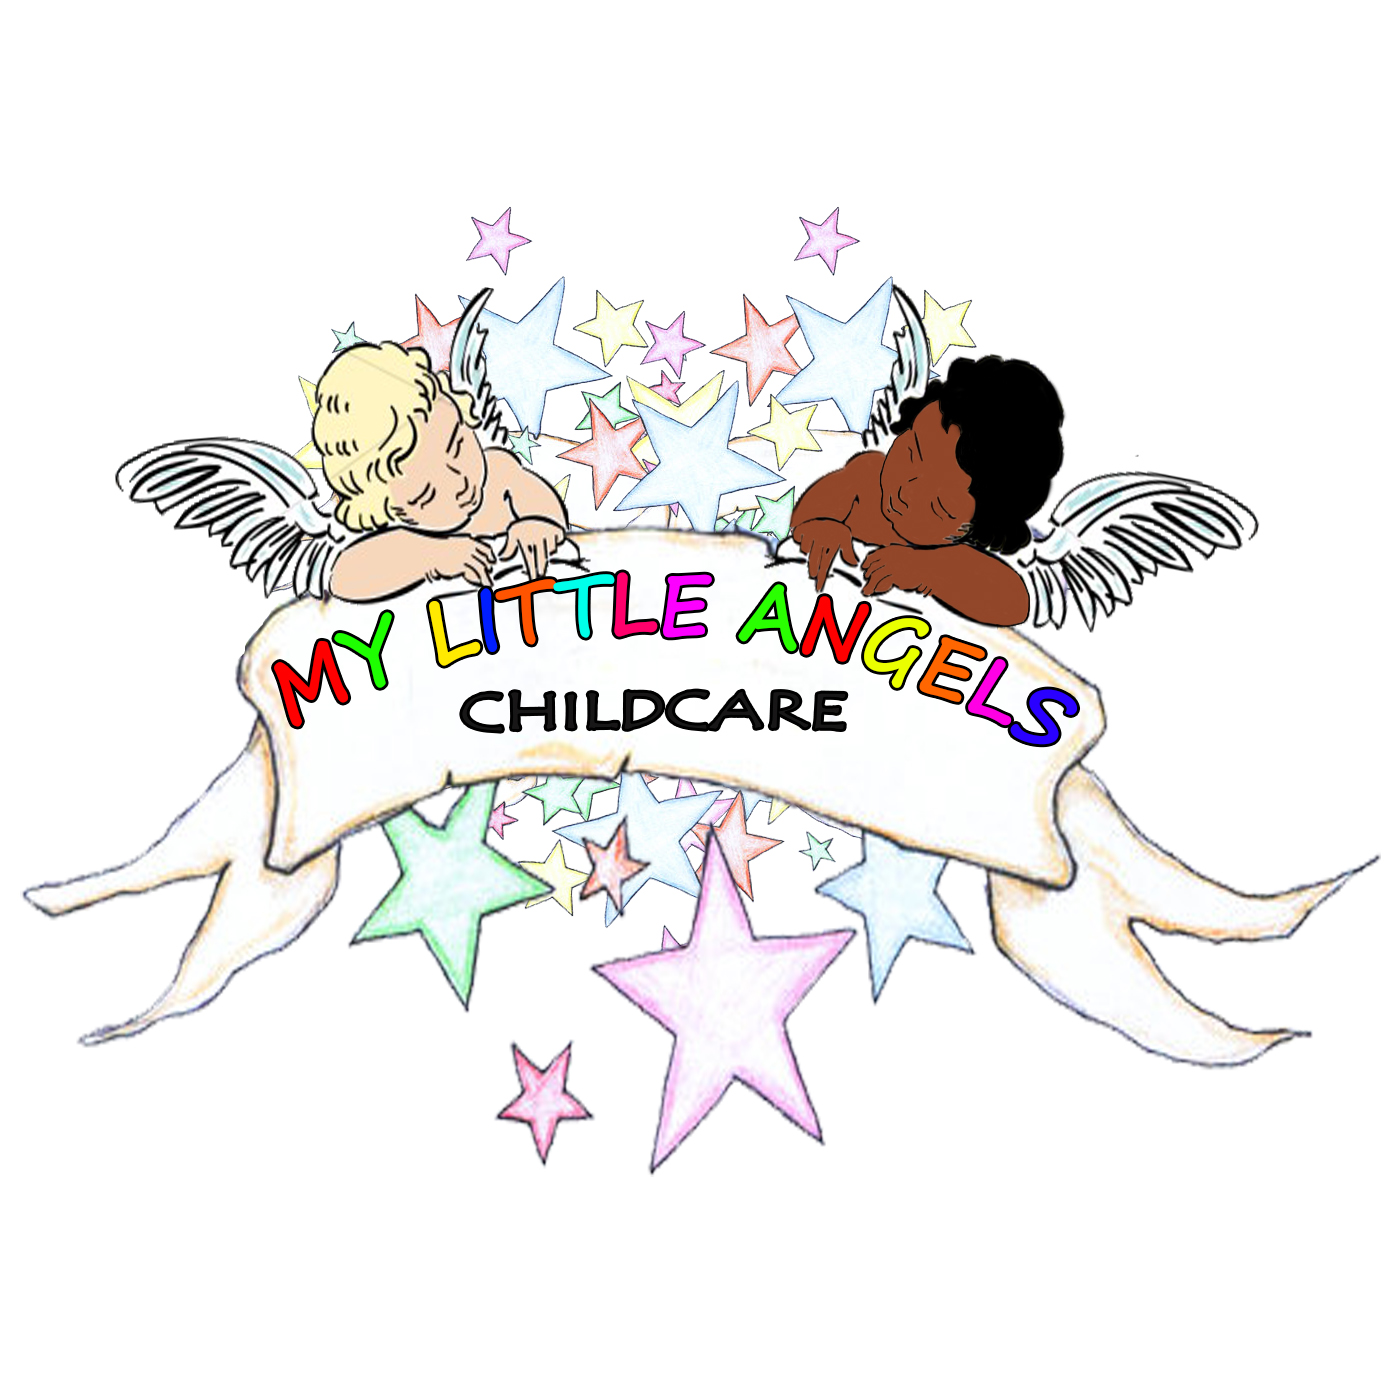 My Little Angels Childcare